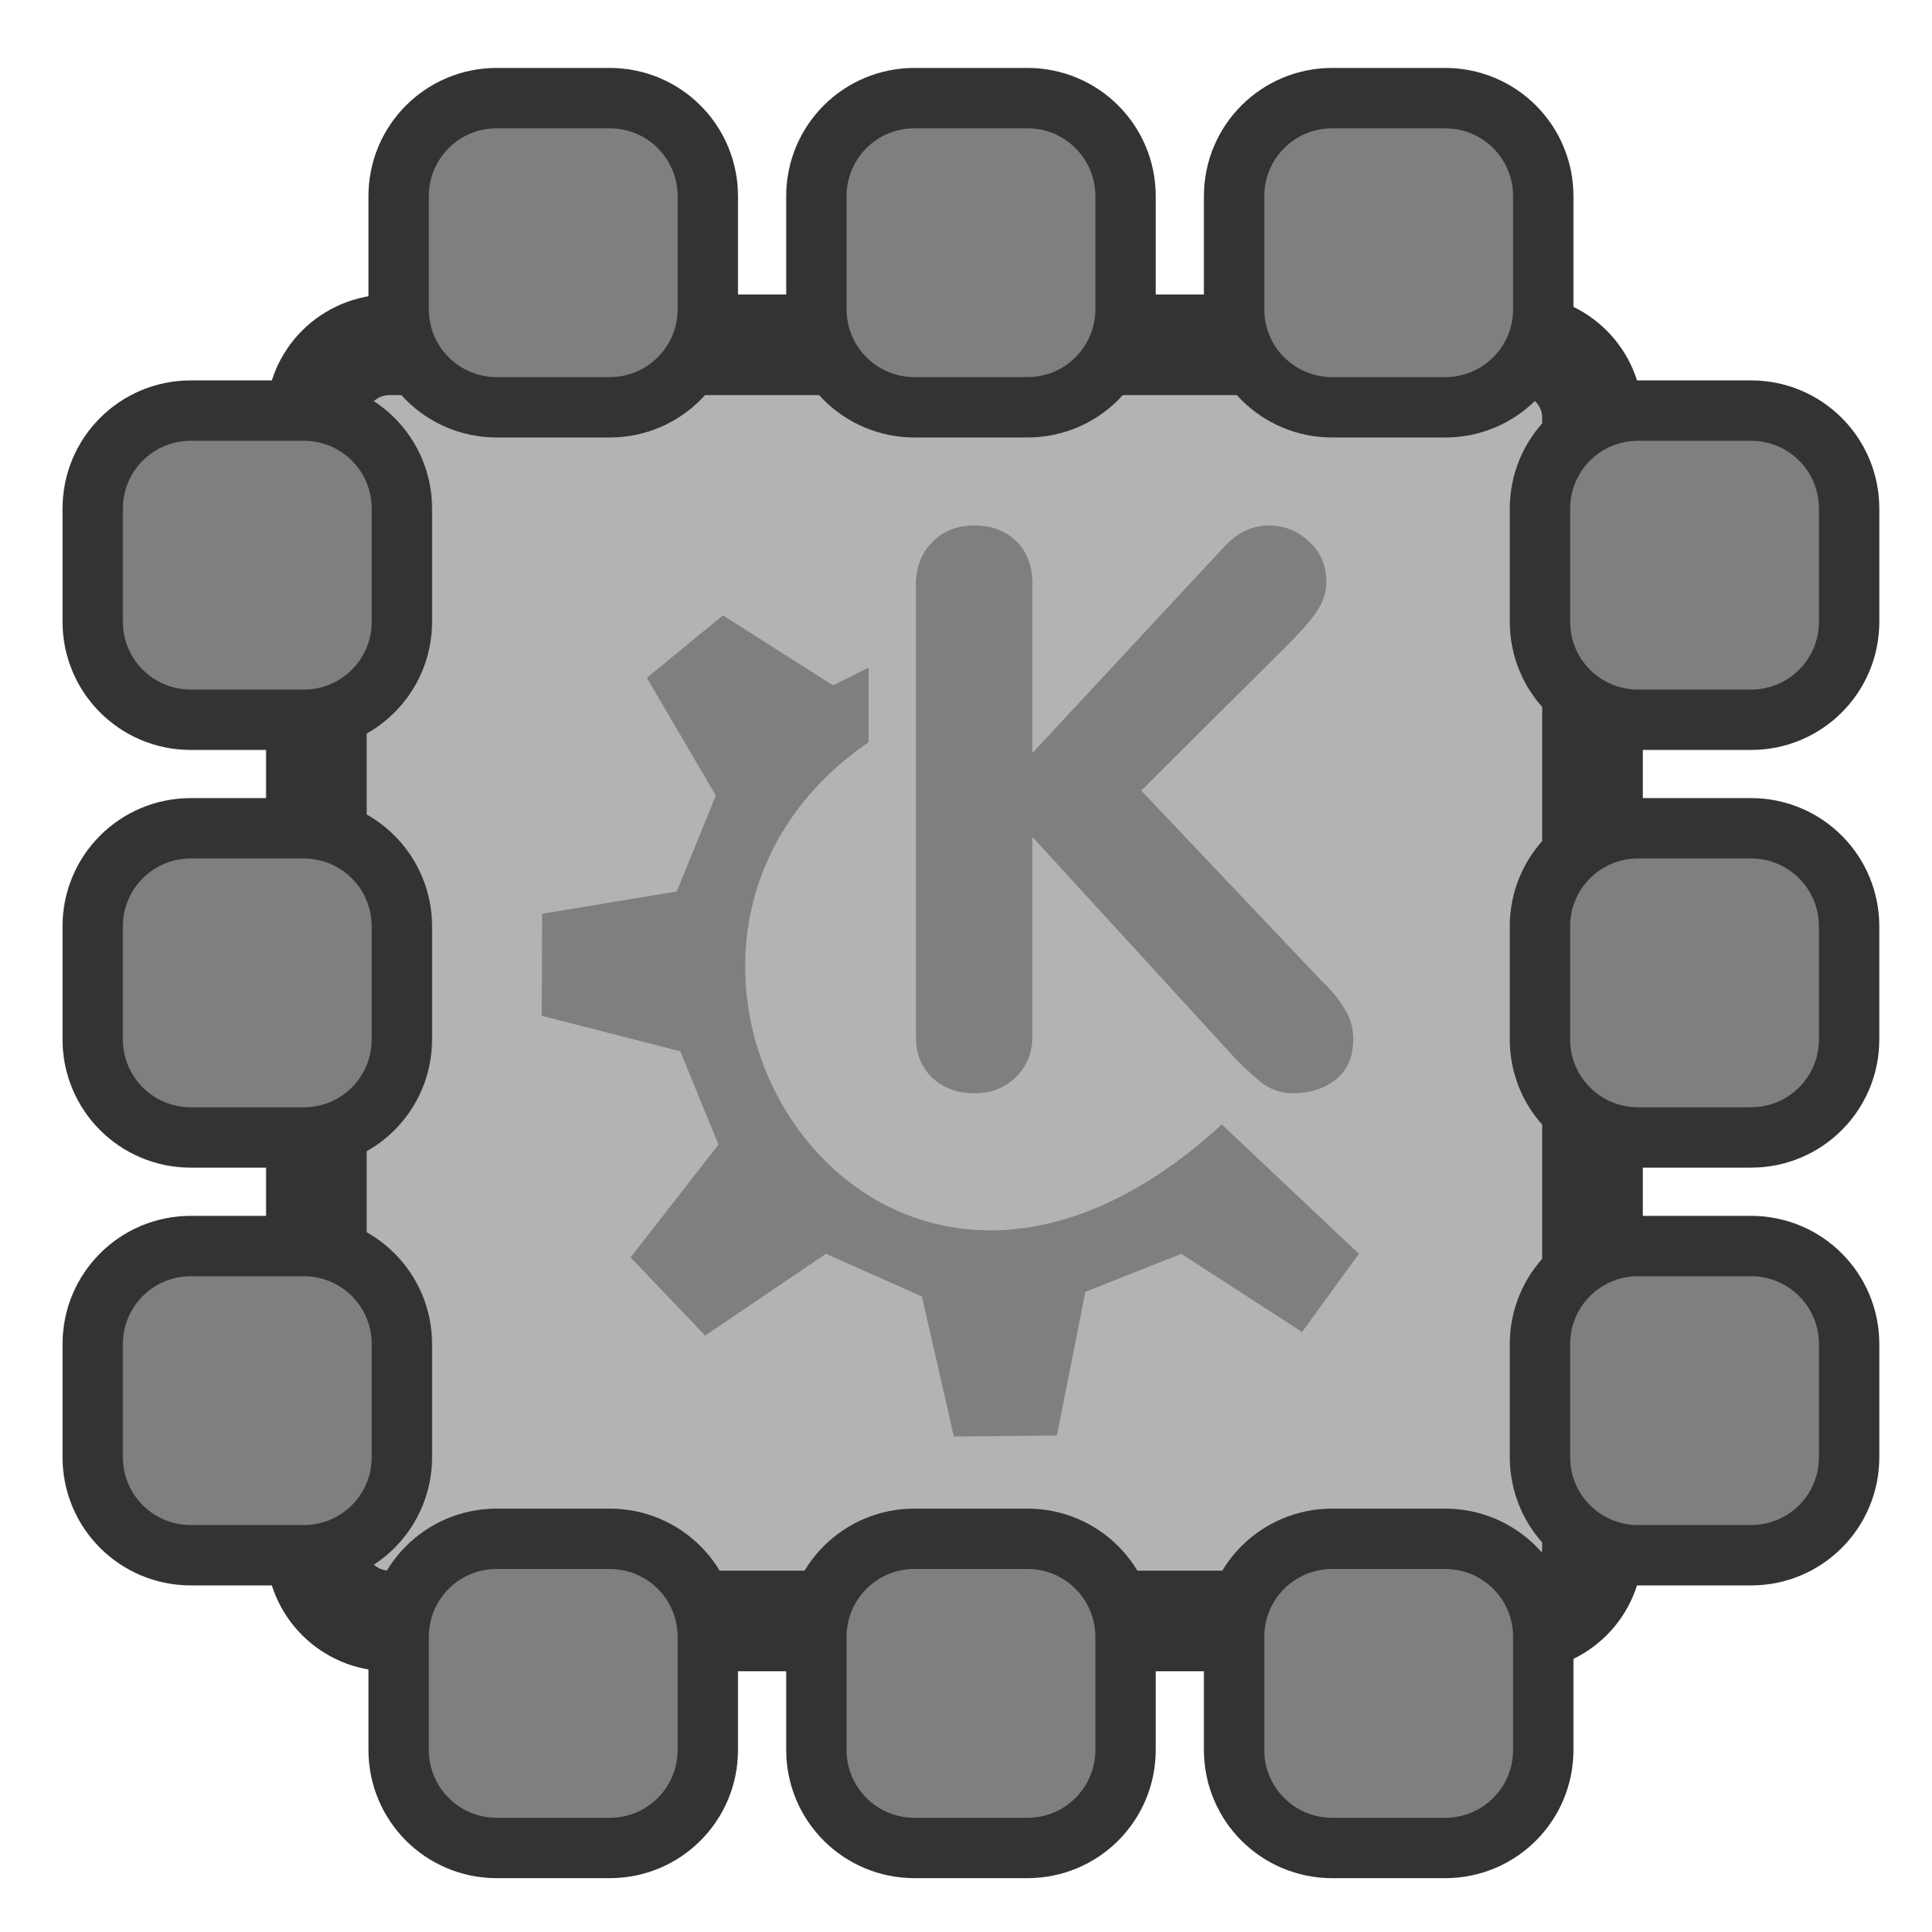 ftksim cpu by dannya